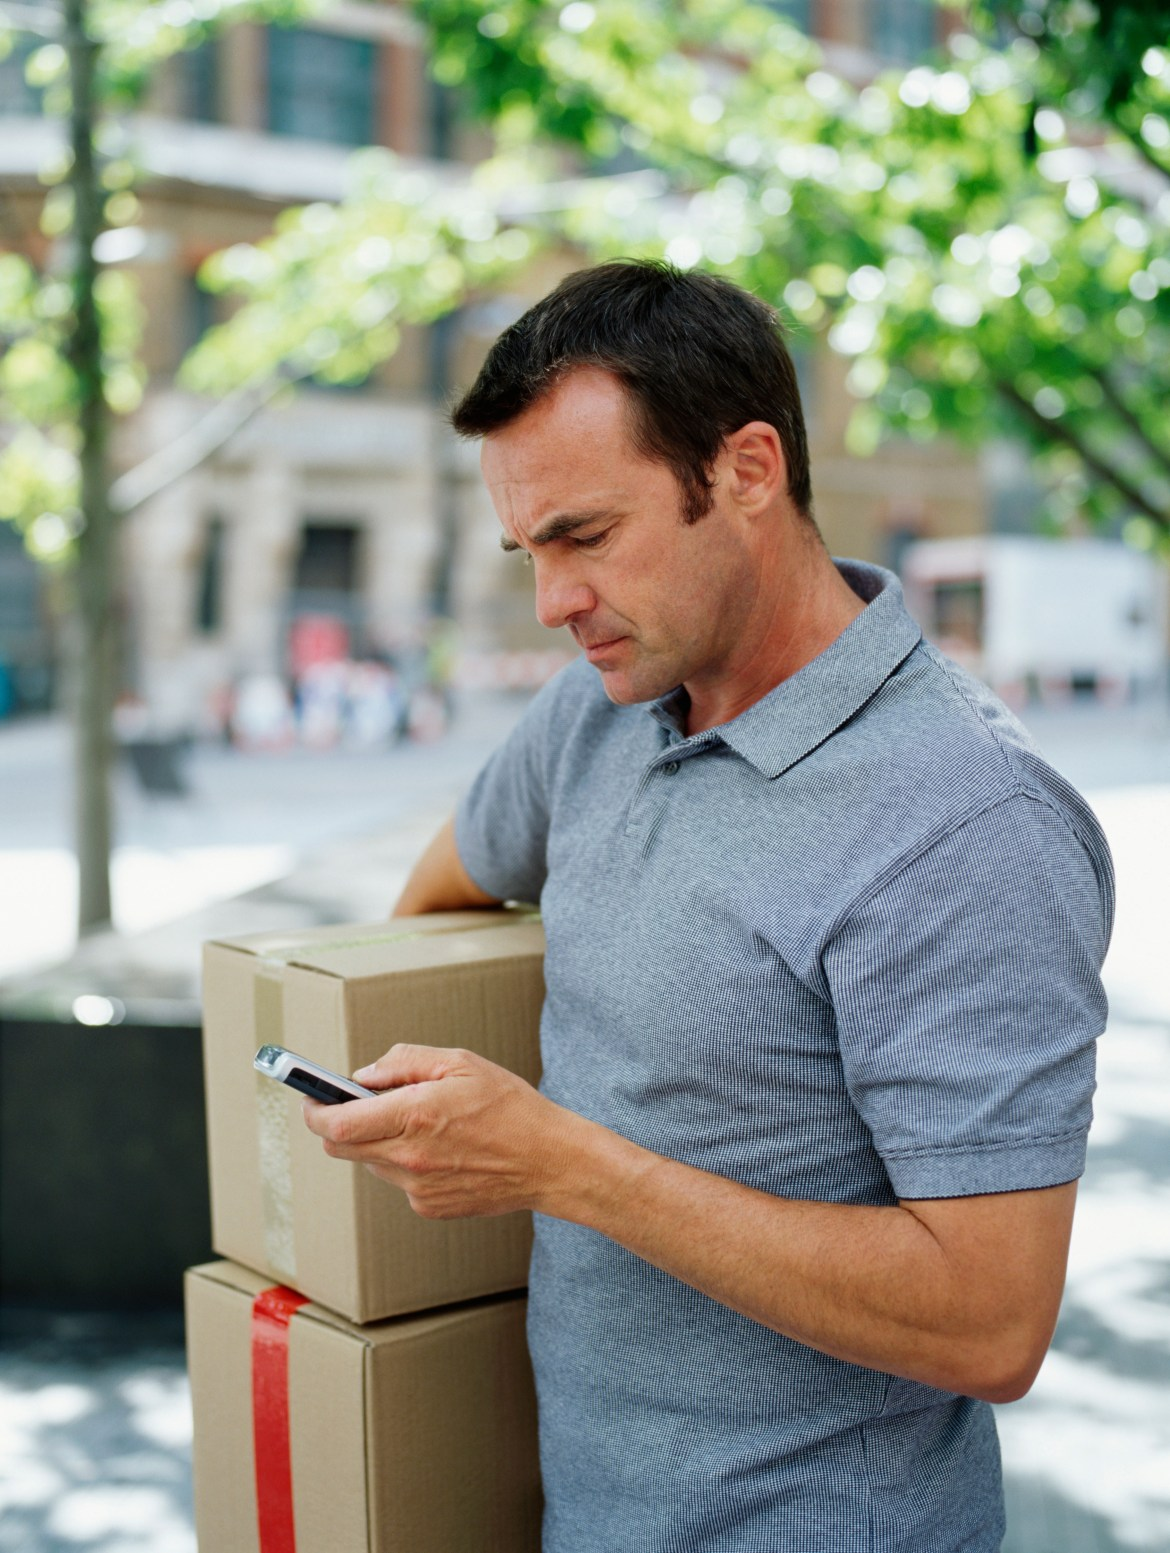 If you are sending parcels abroad then make sure they arrive in time